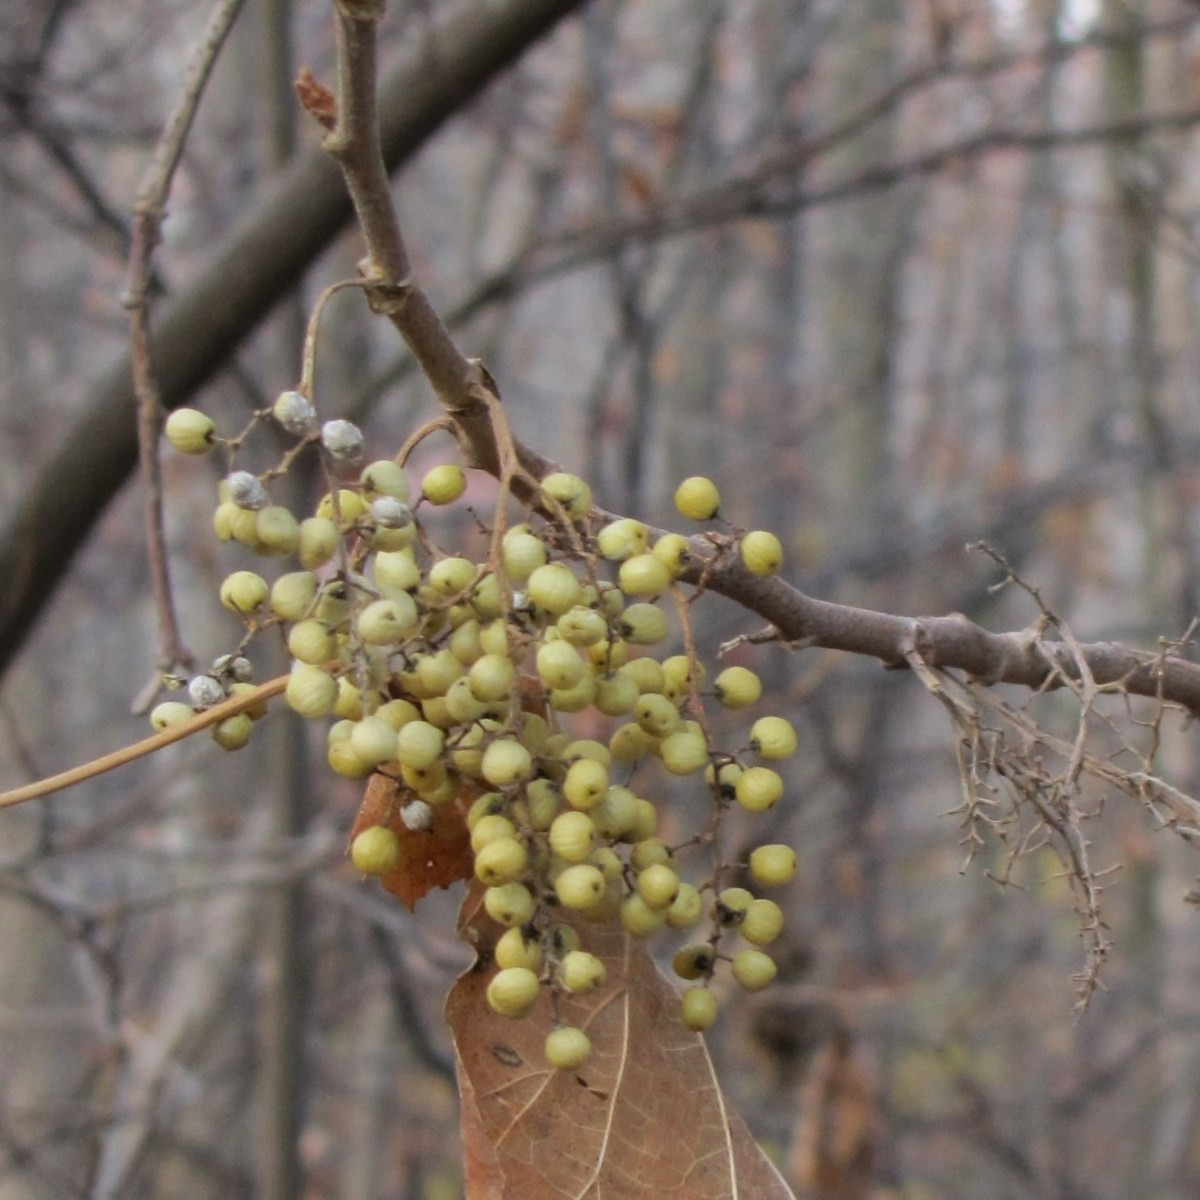 Poison ivy berries hang from a leafless branch in late autumn